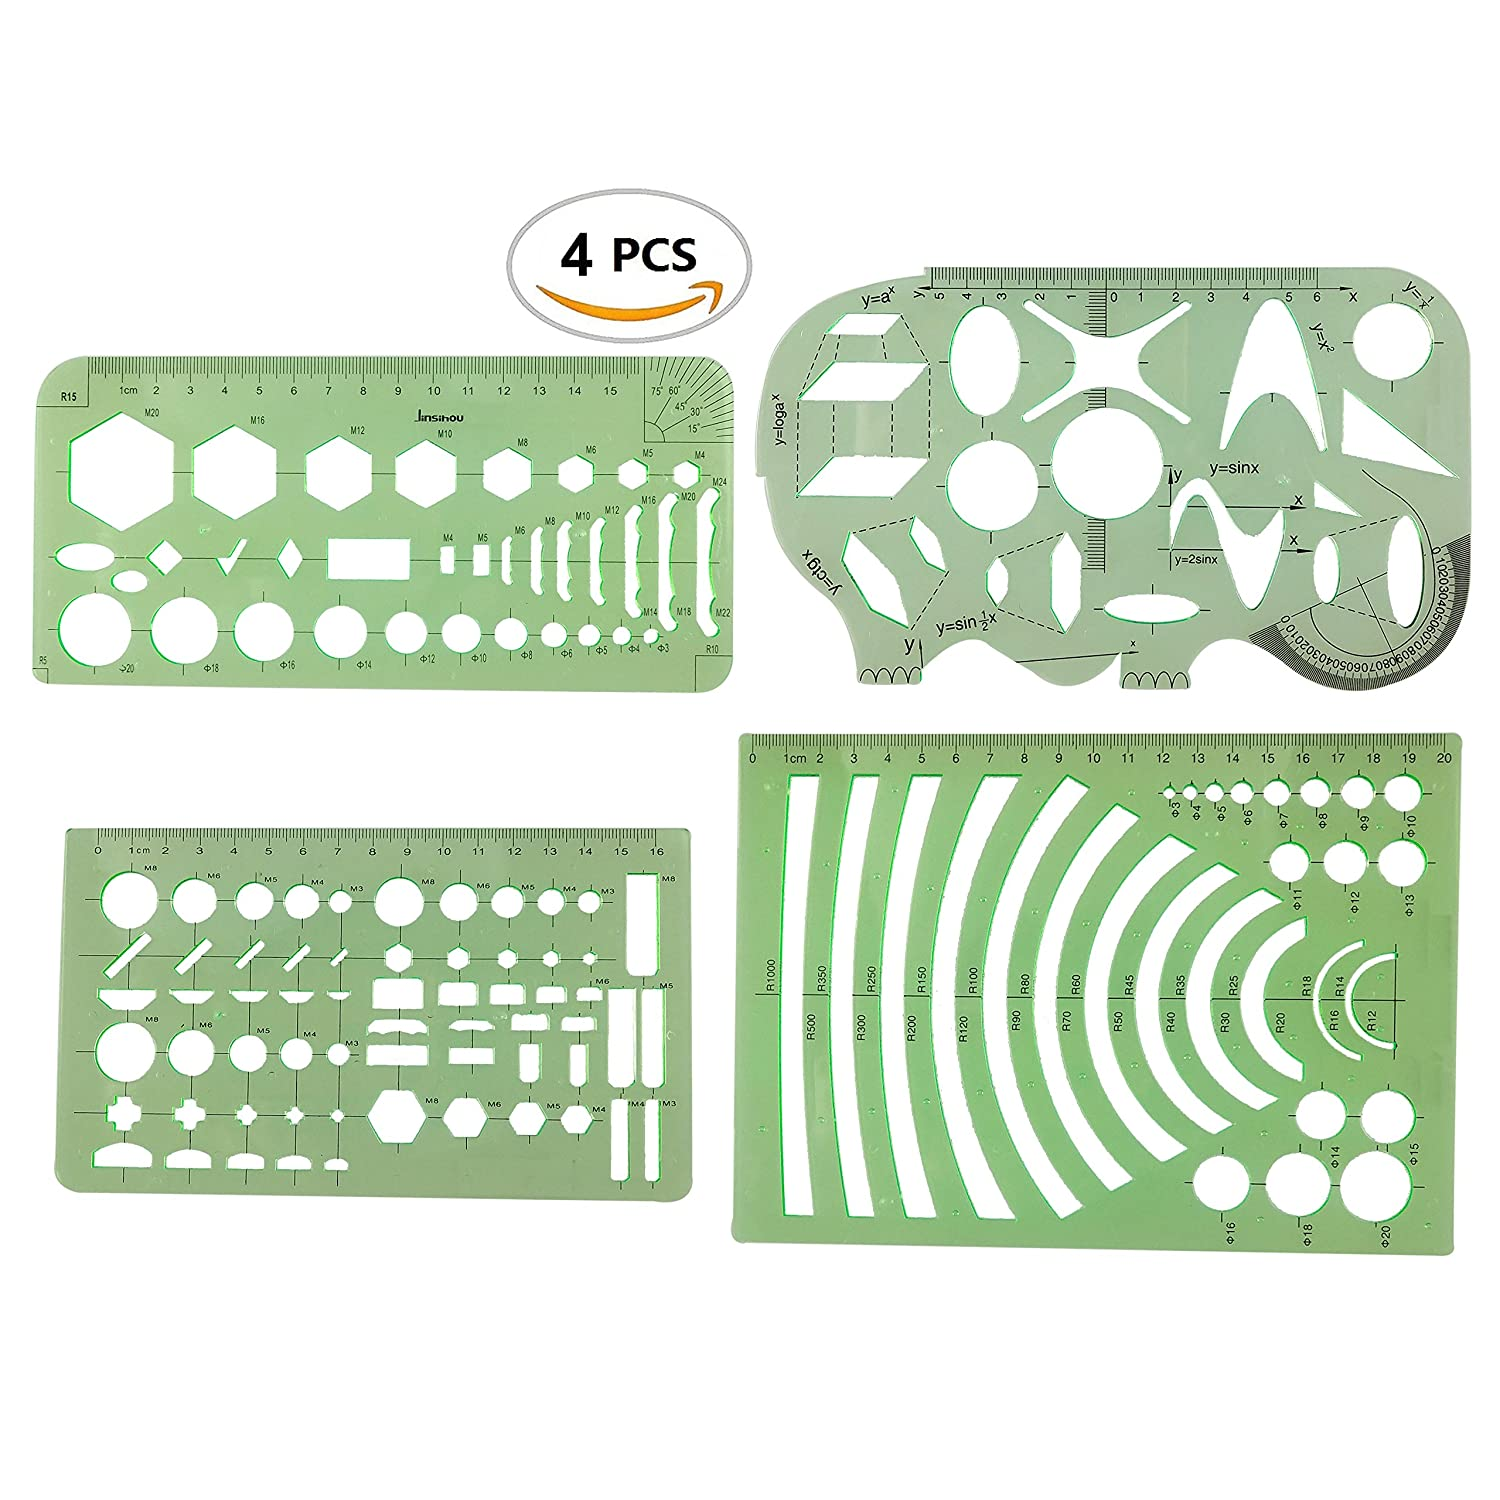 4PCS Plastic Clear Green Color Measuring Templates Geometric Rulers for Office and School, Building formwork, Drawings Templates by CSPRING